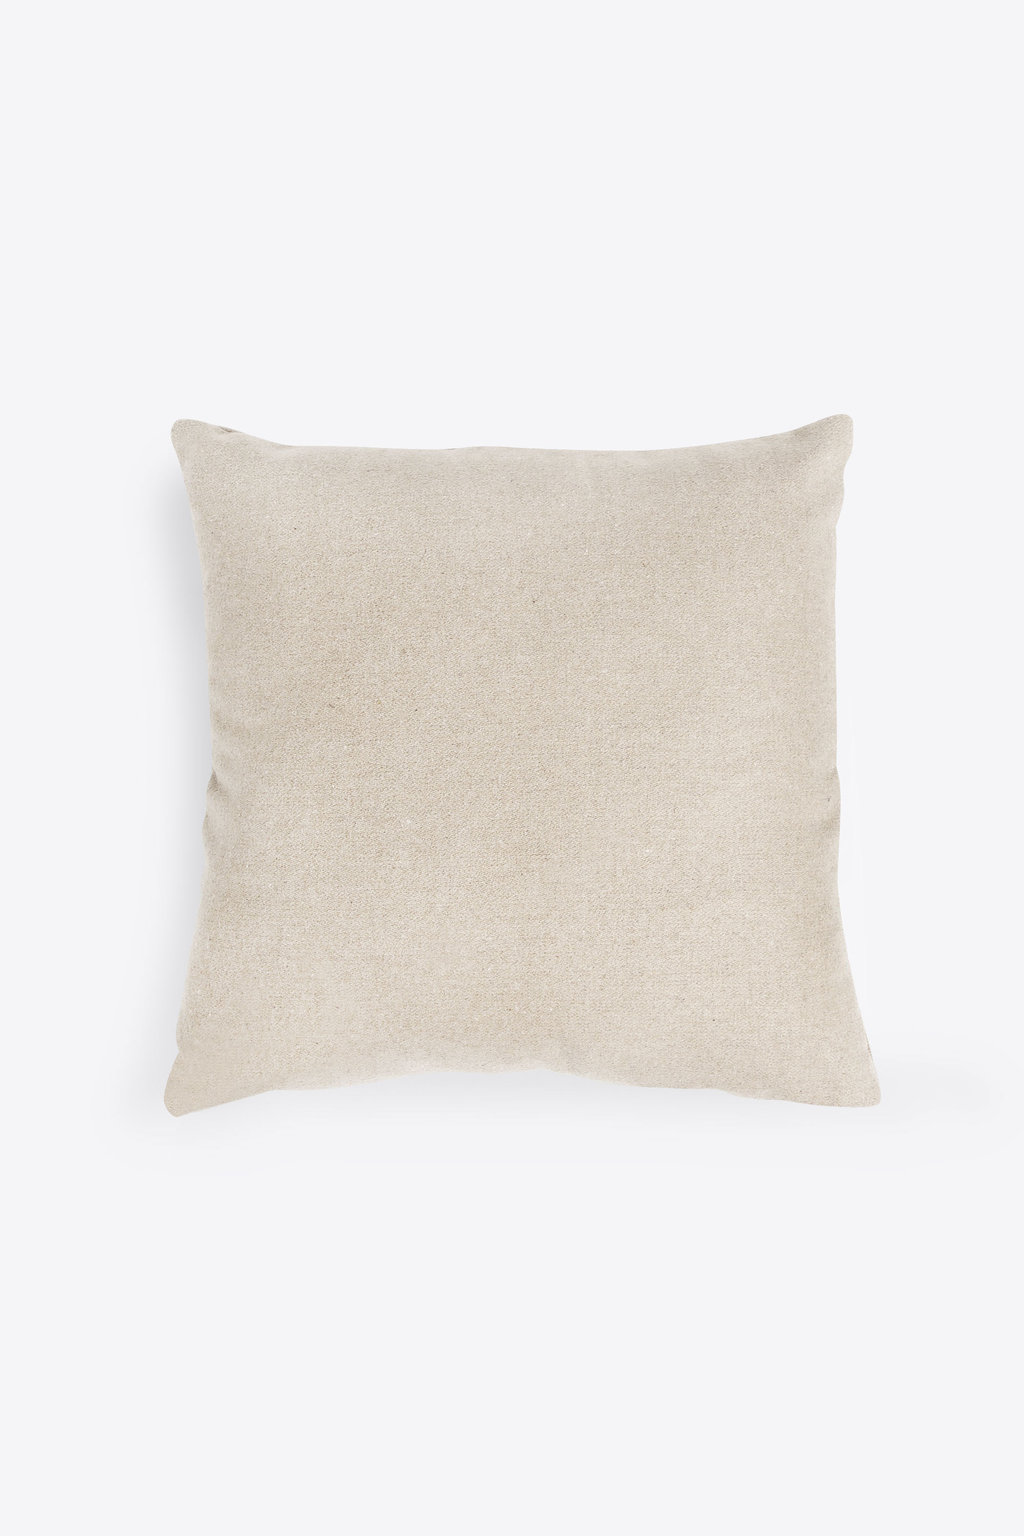 Felt Throw Pillow 2336 Oatmeal 3